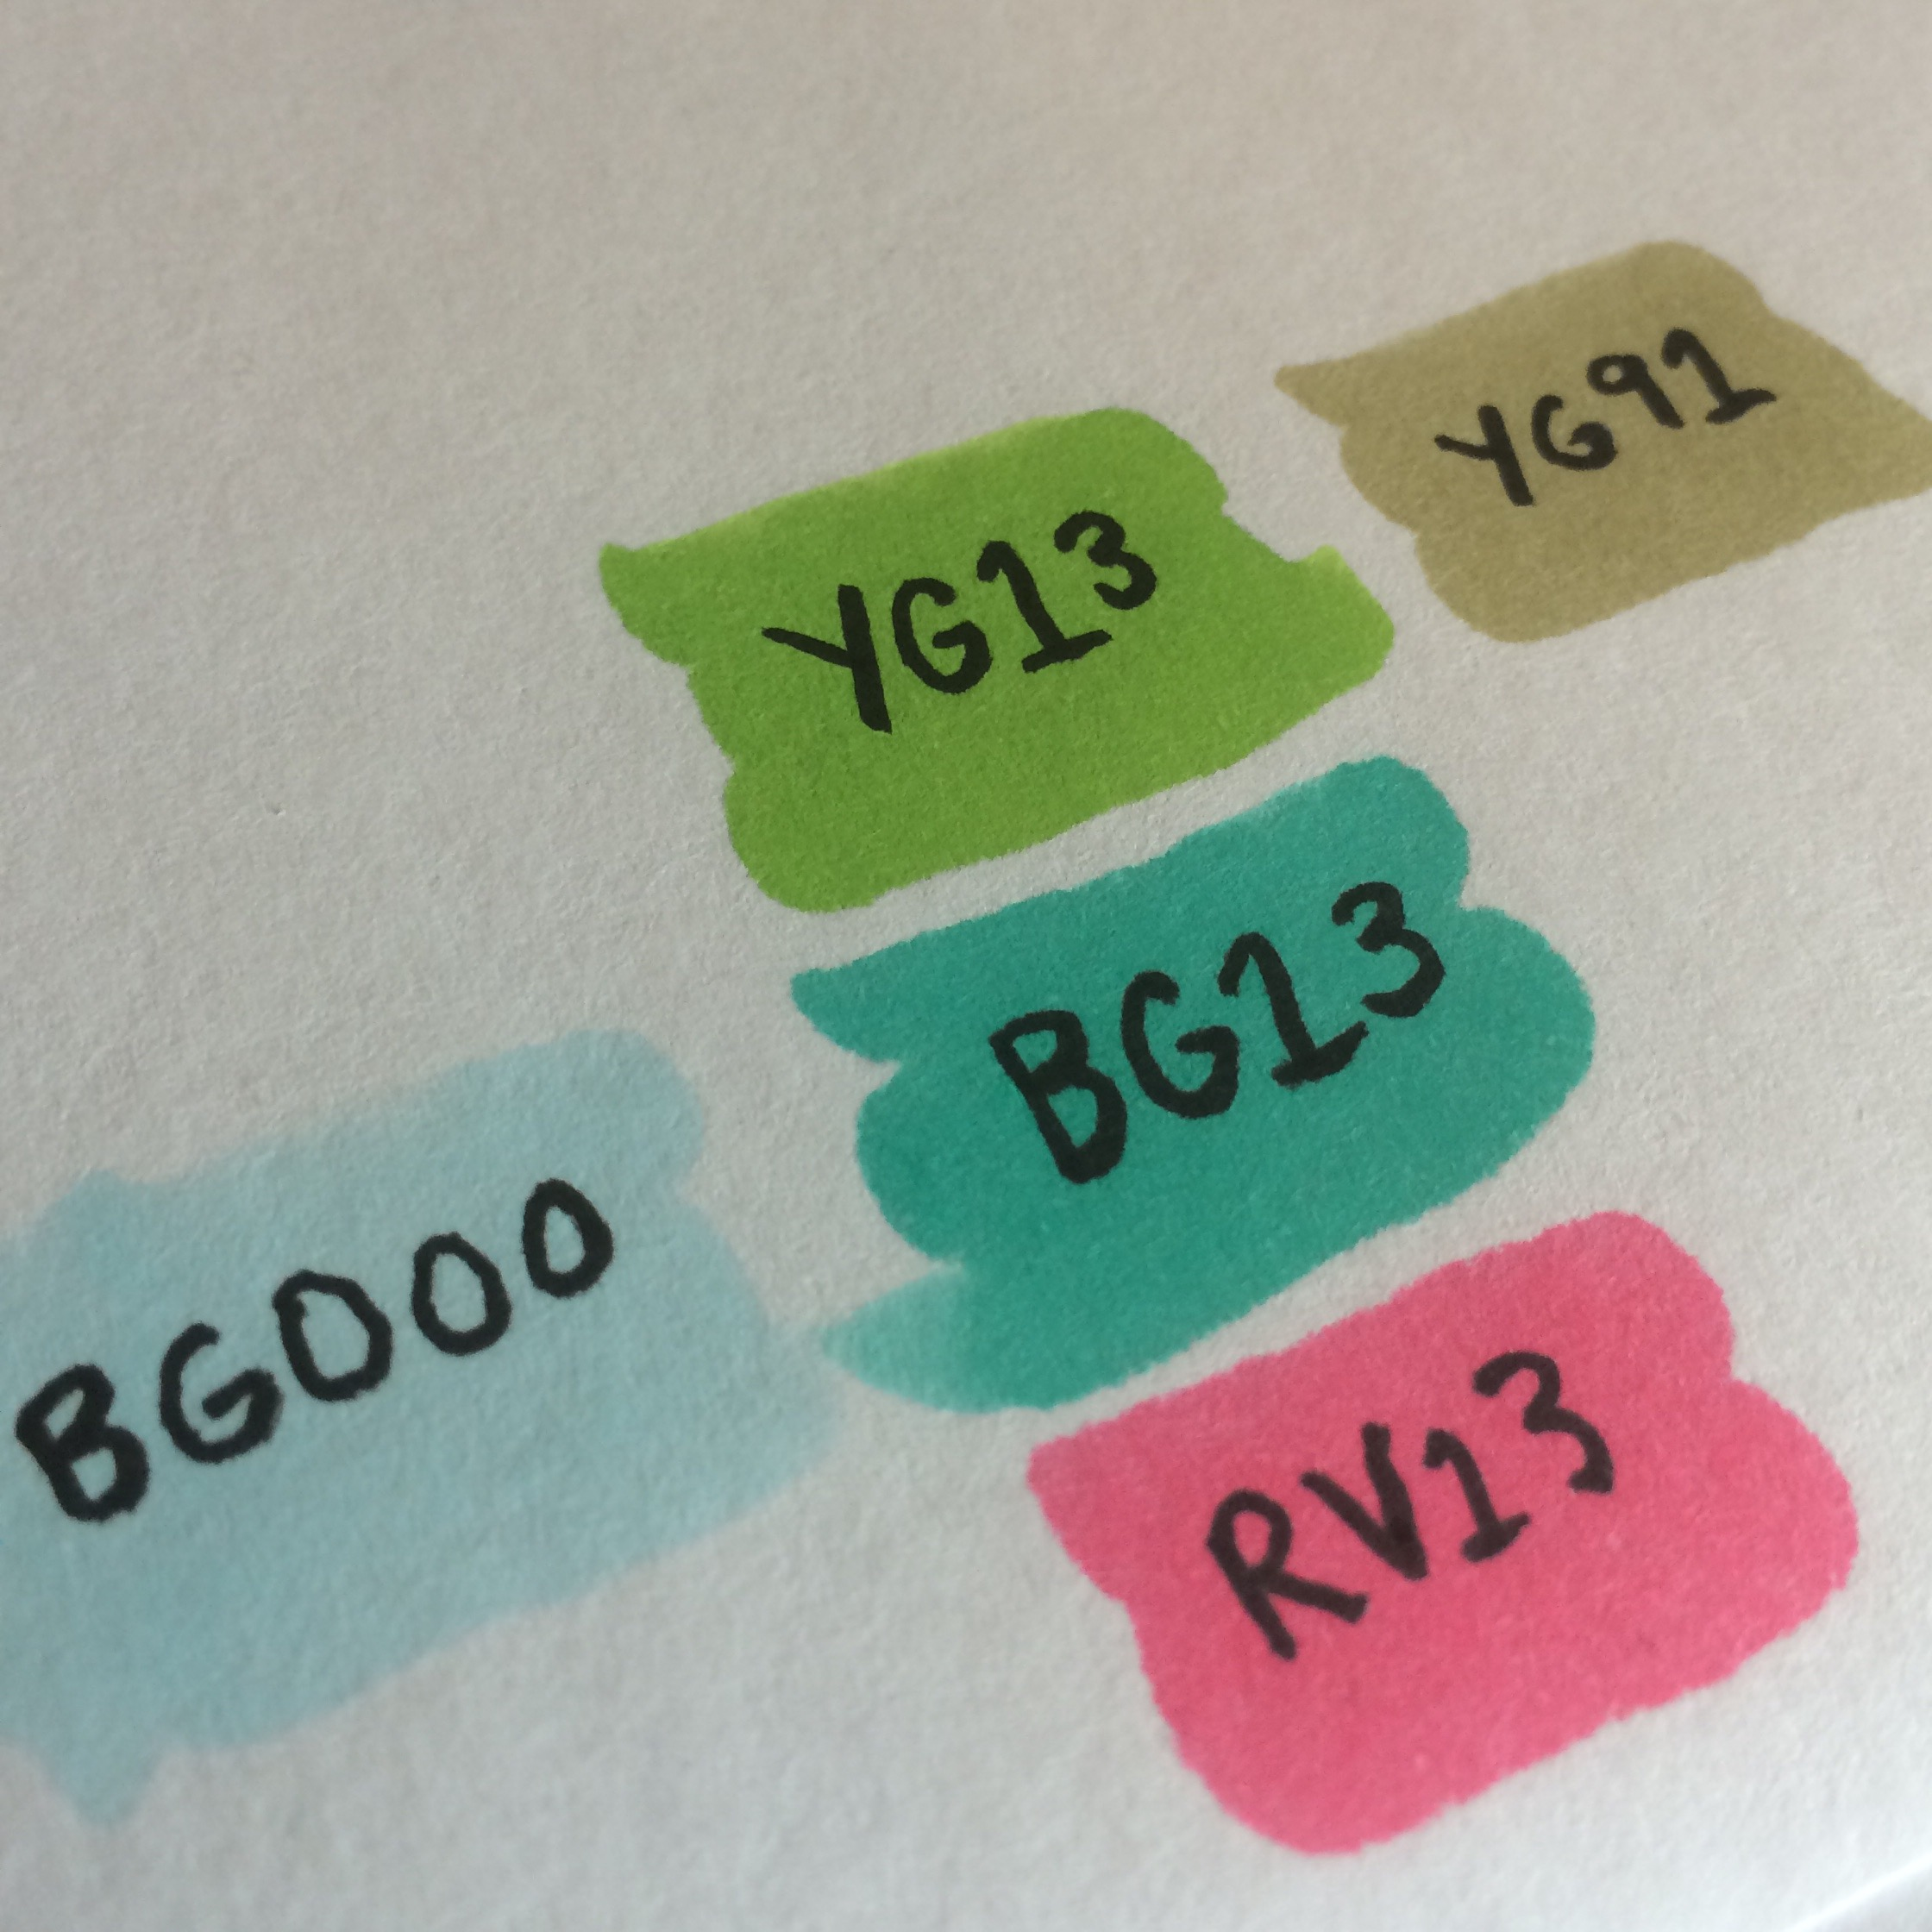 Copic colors YG13, BG13, and RV13